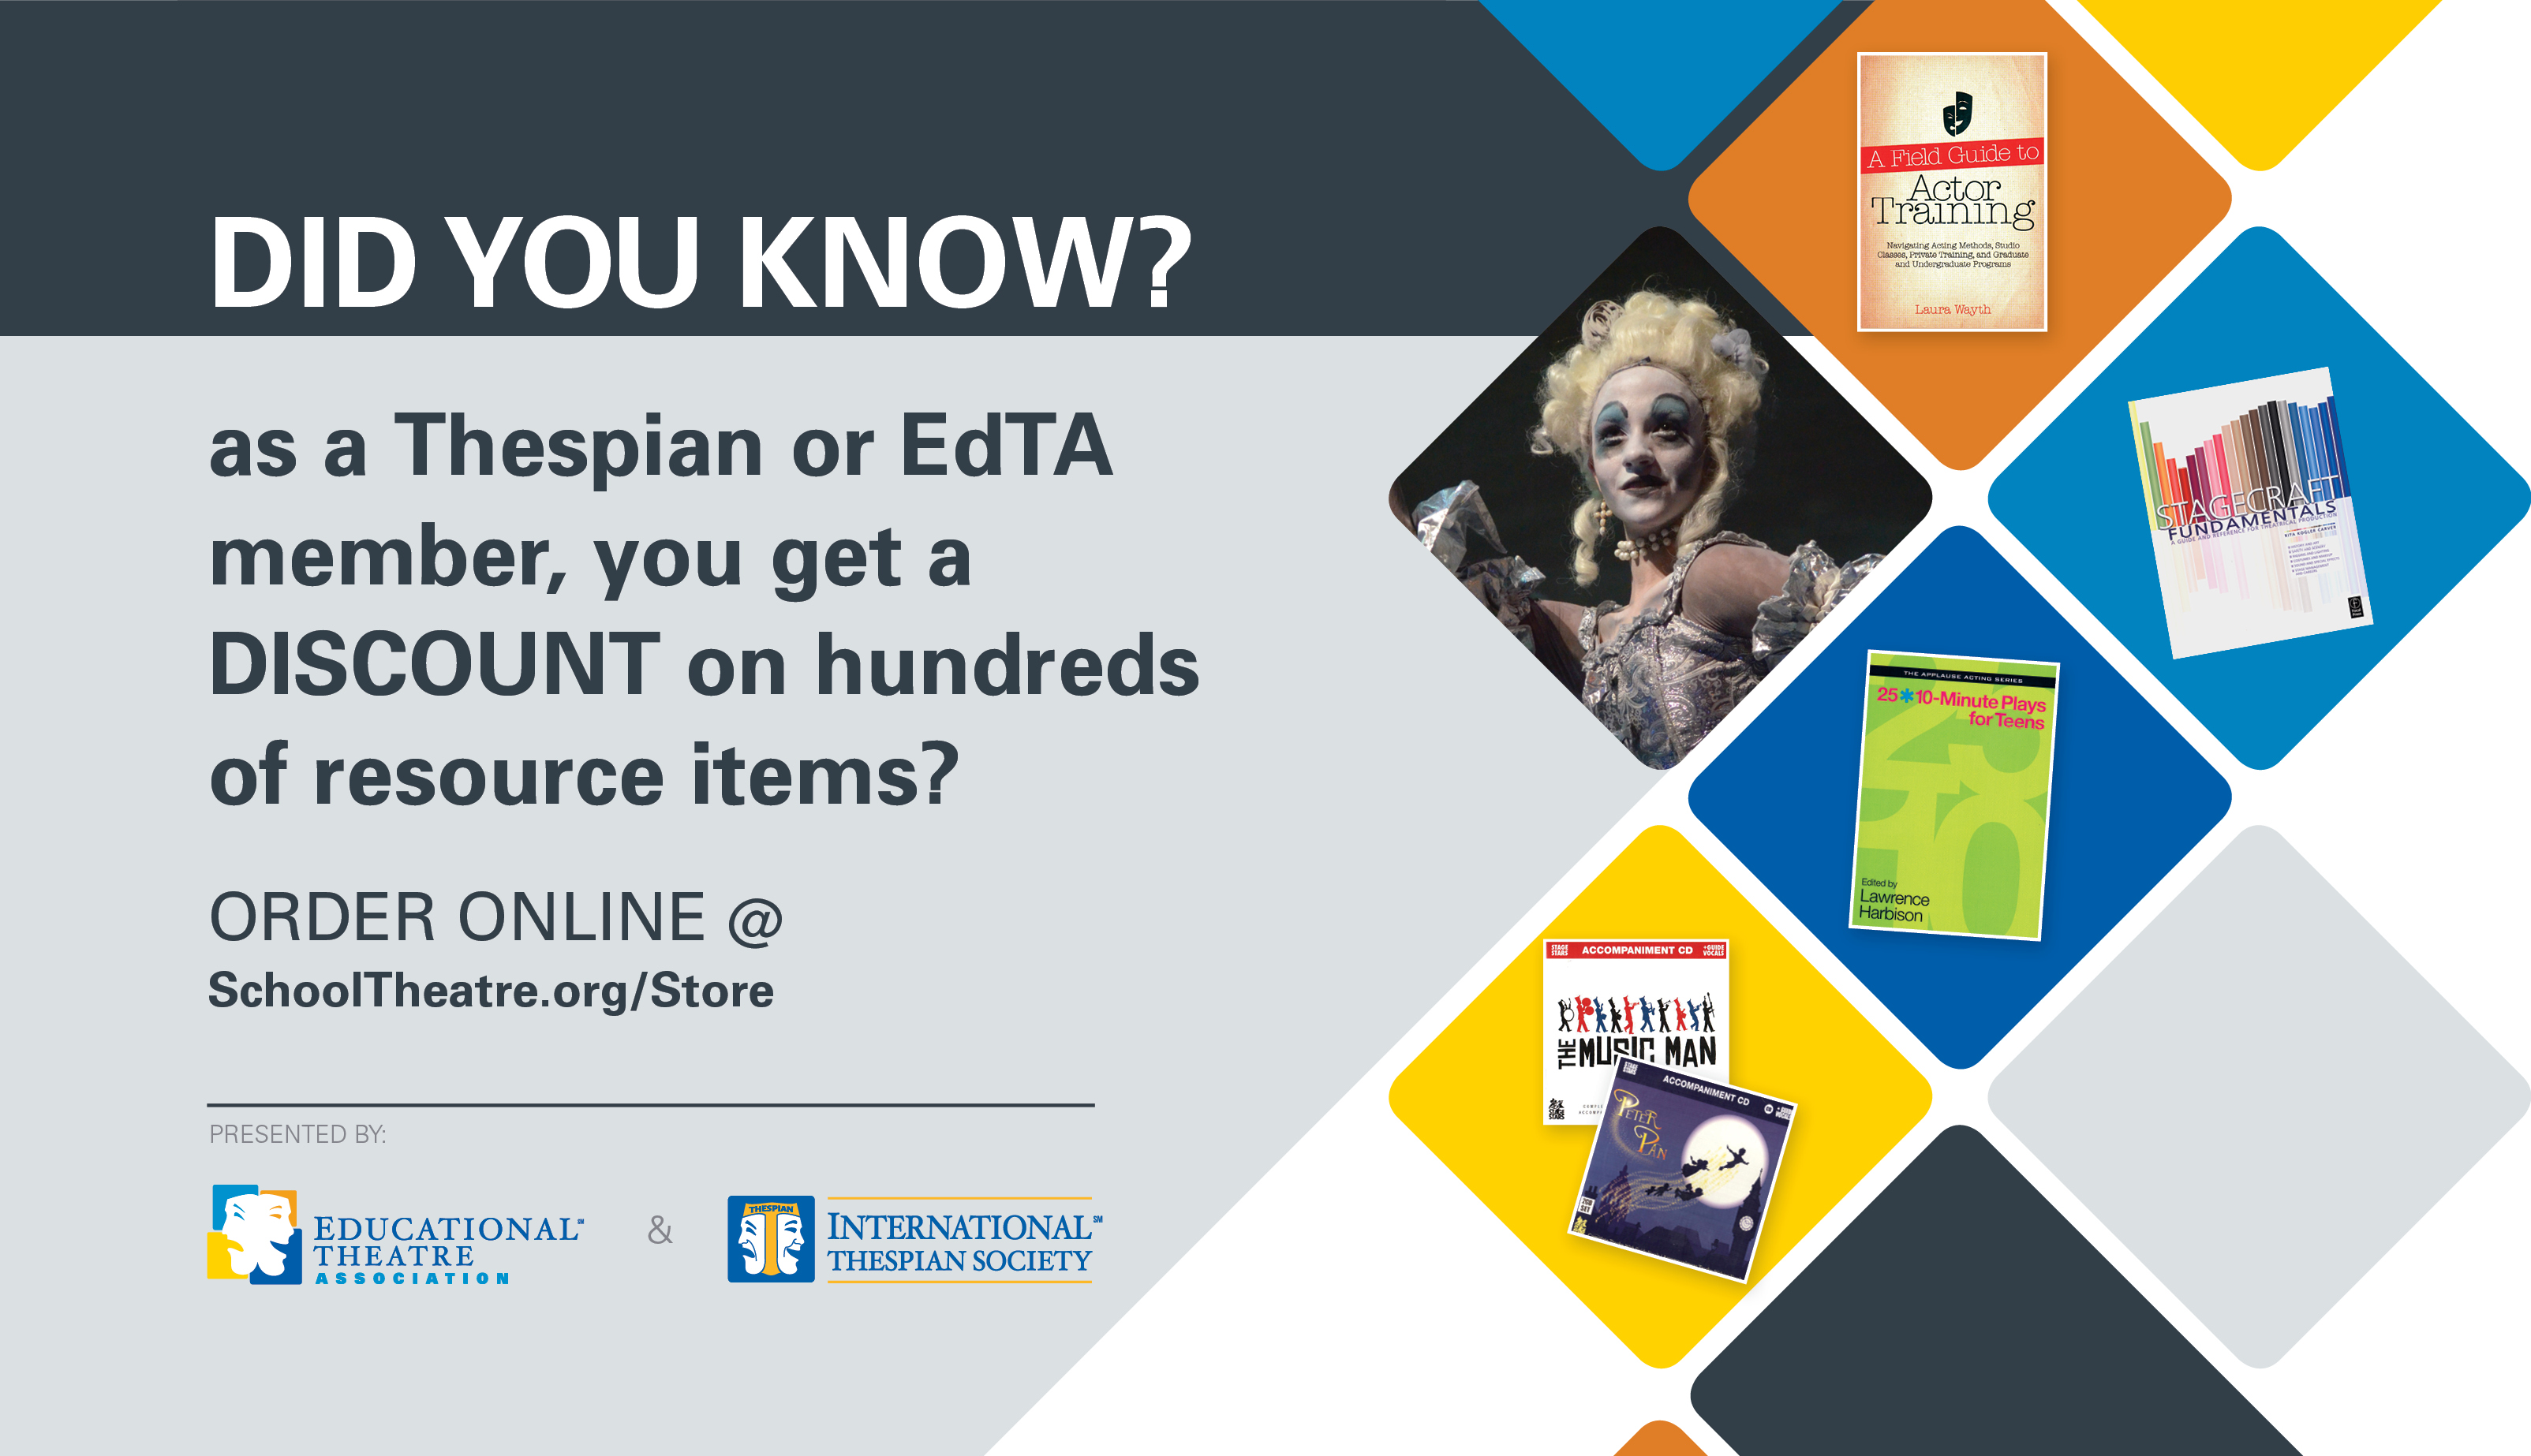 Did you know? As a Thespian or EdTA member, you get a DISCOUNT on hundreds of resource items? Order online at https://www.schooltheatre.org/store/edtastorehome